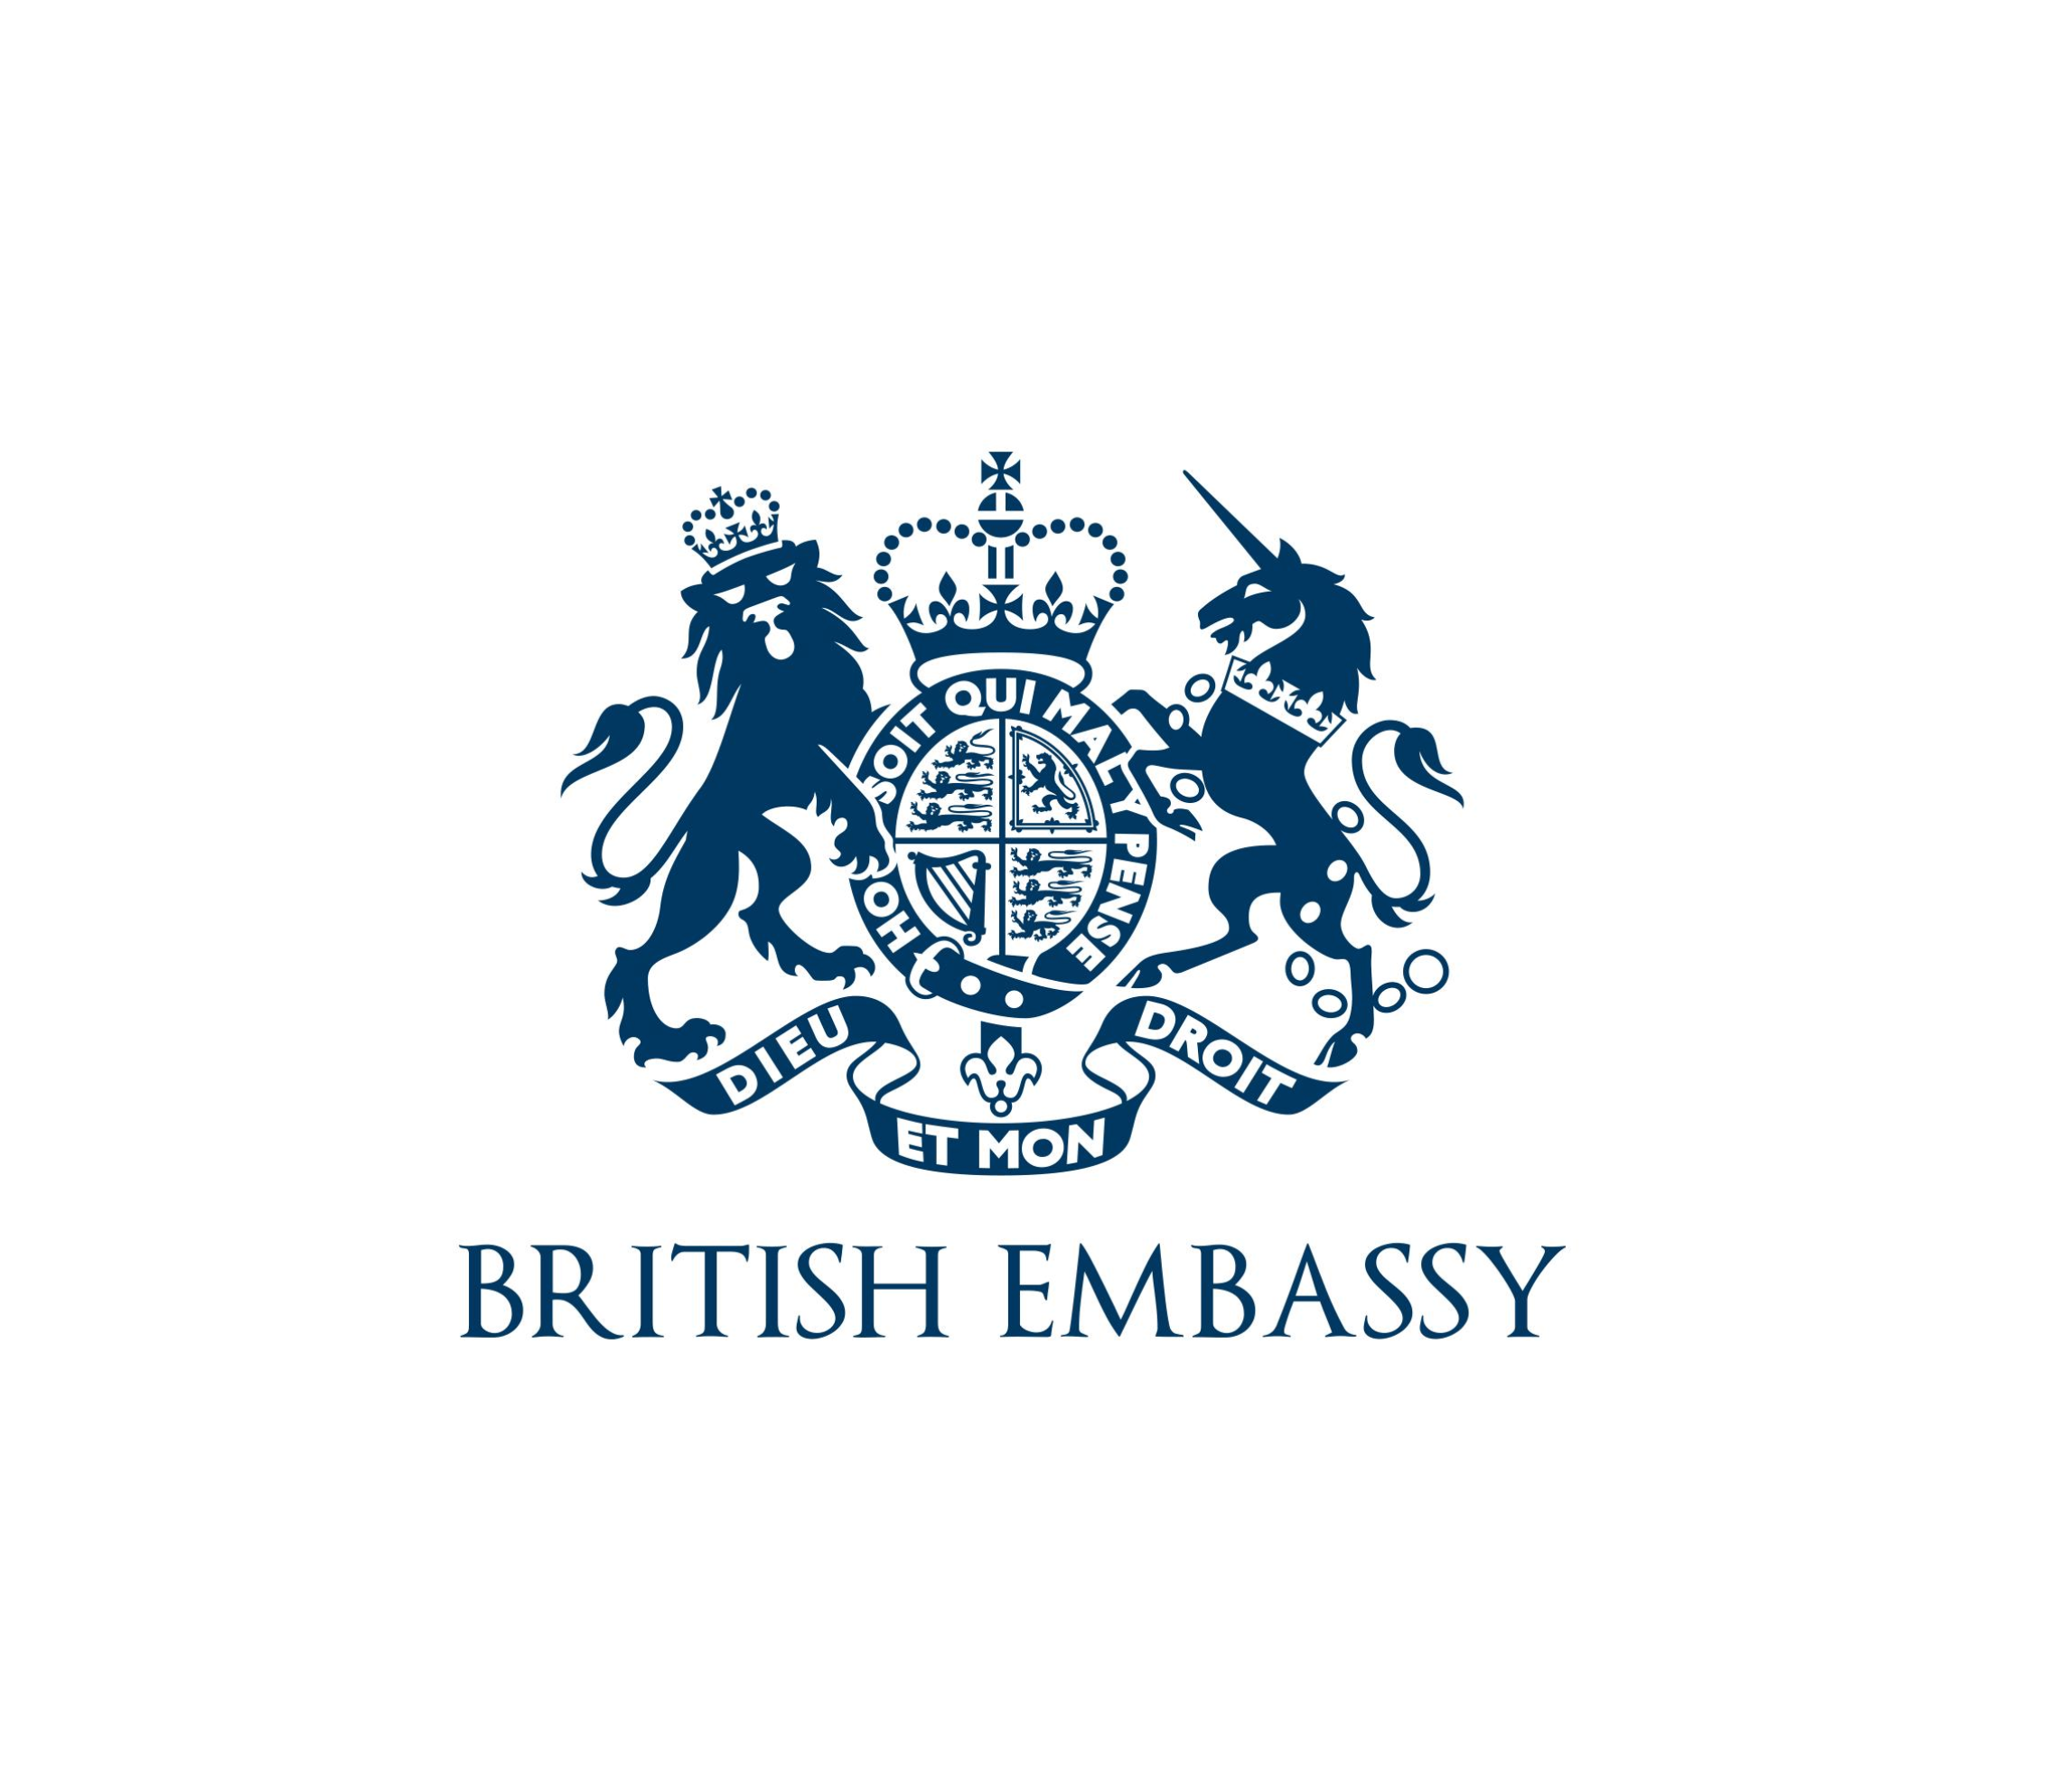 British-Embassy-Jungle-Straws-Bamb00-Straws-Wholesale.png